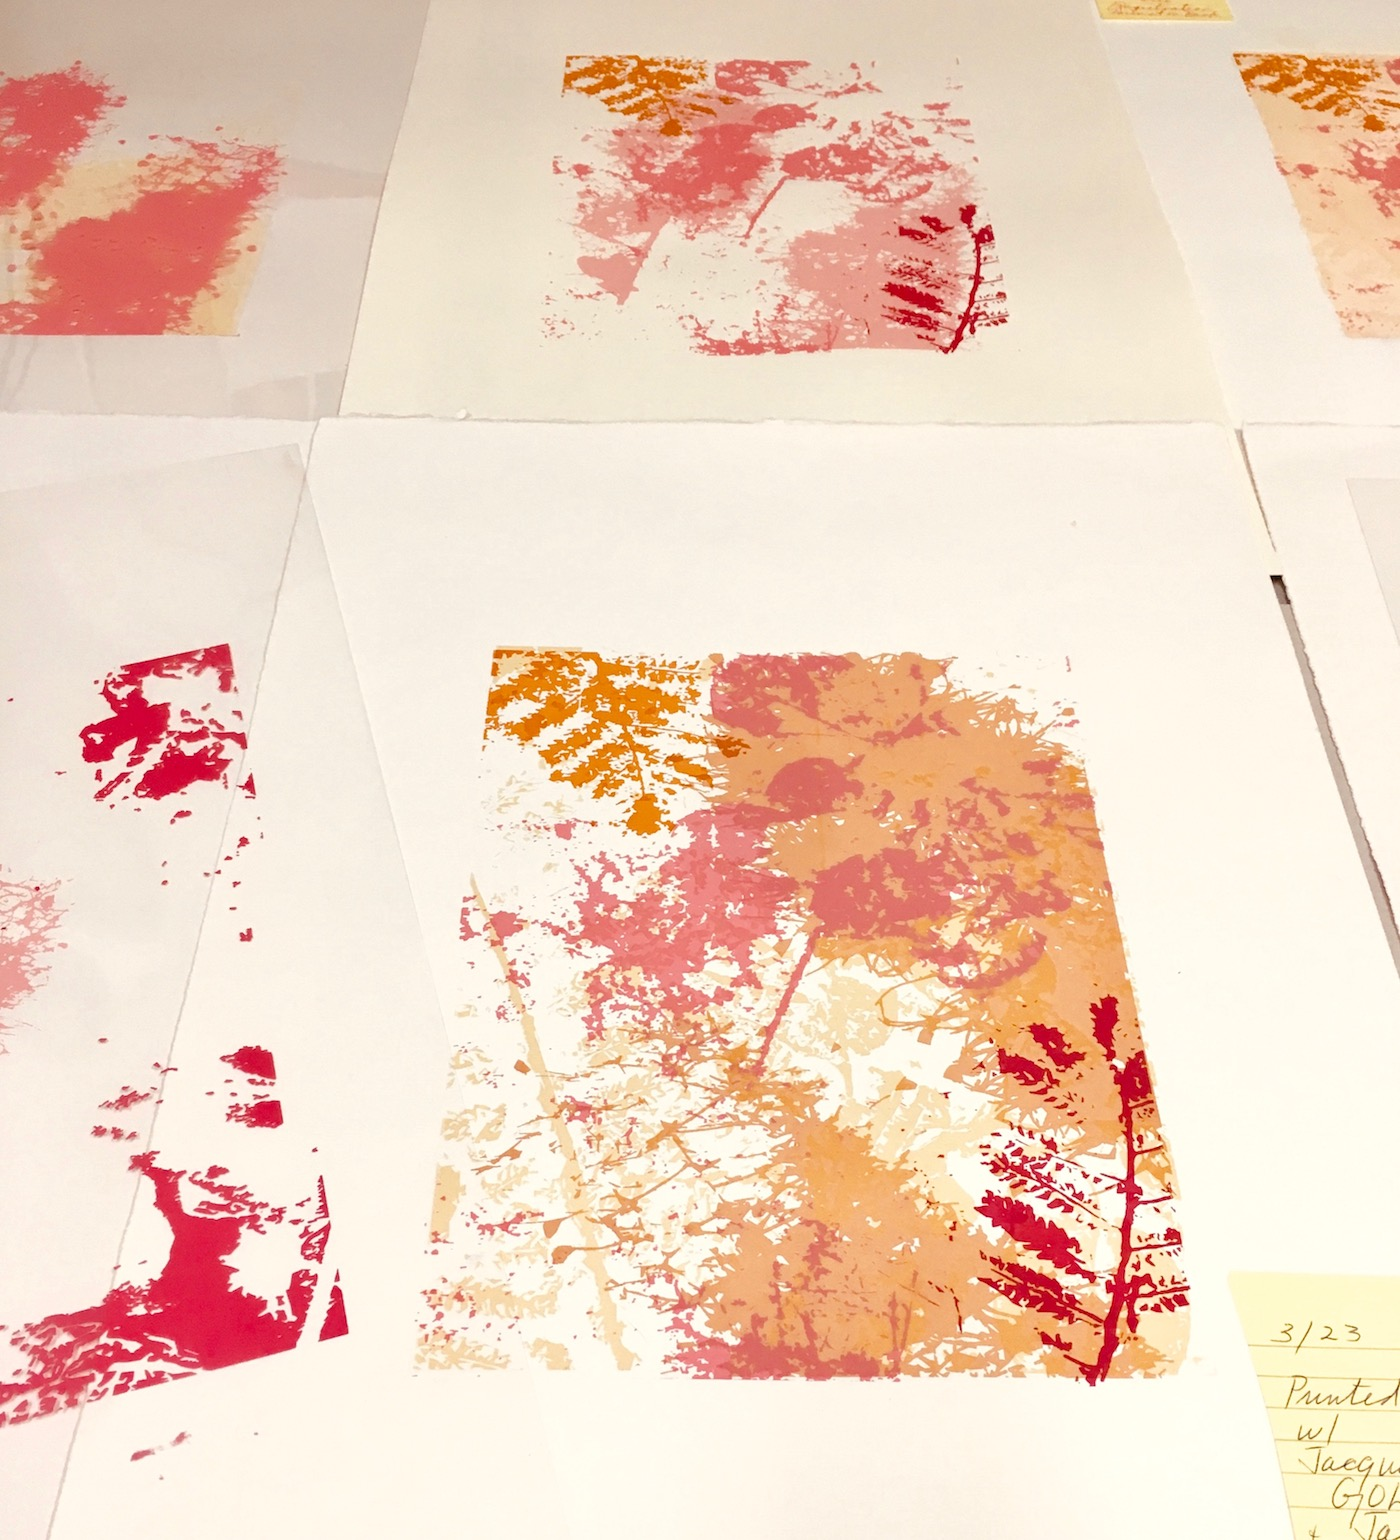 Water based printmaking - Affordable, environmentally responsible art produced in small editions by hand.